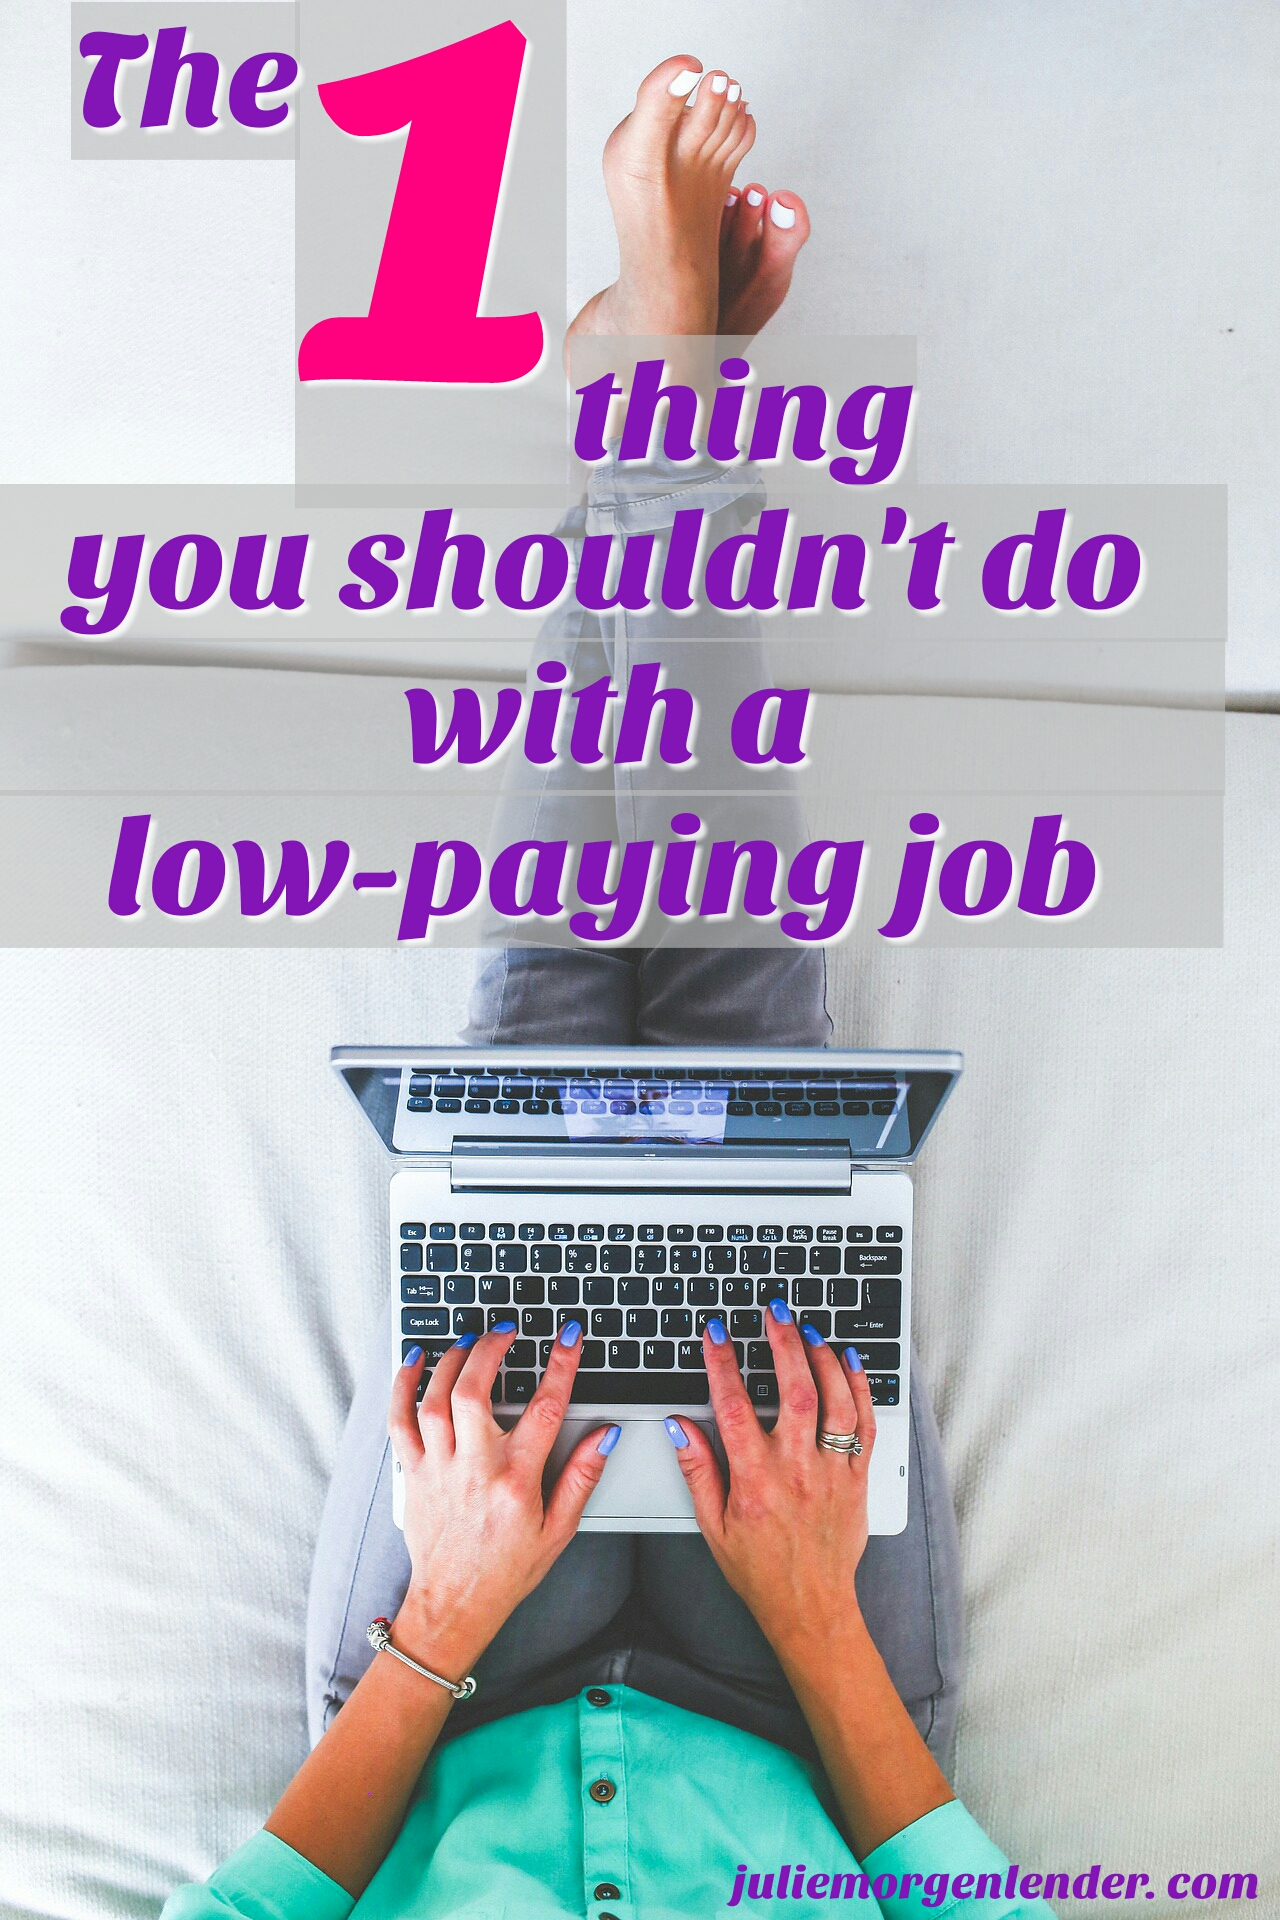 The 1 thing you shouldn't do with a low-paying job